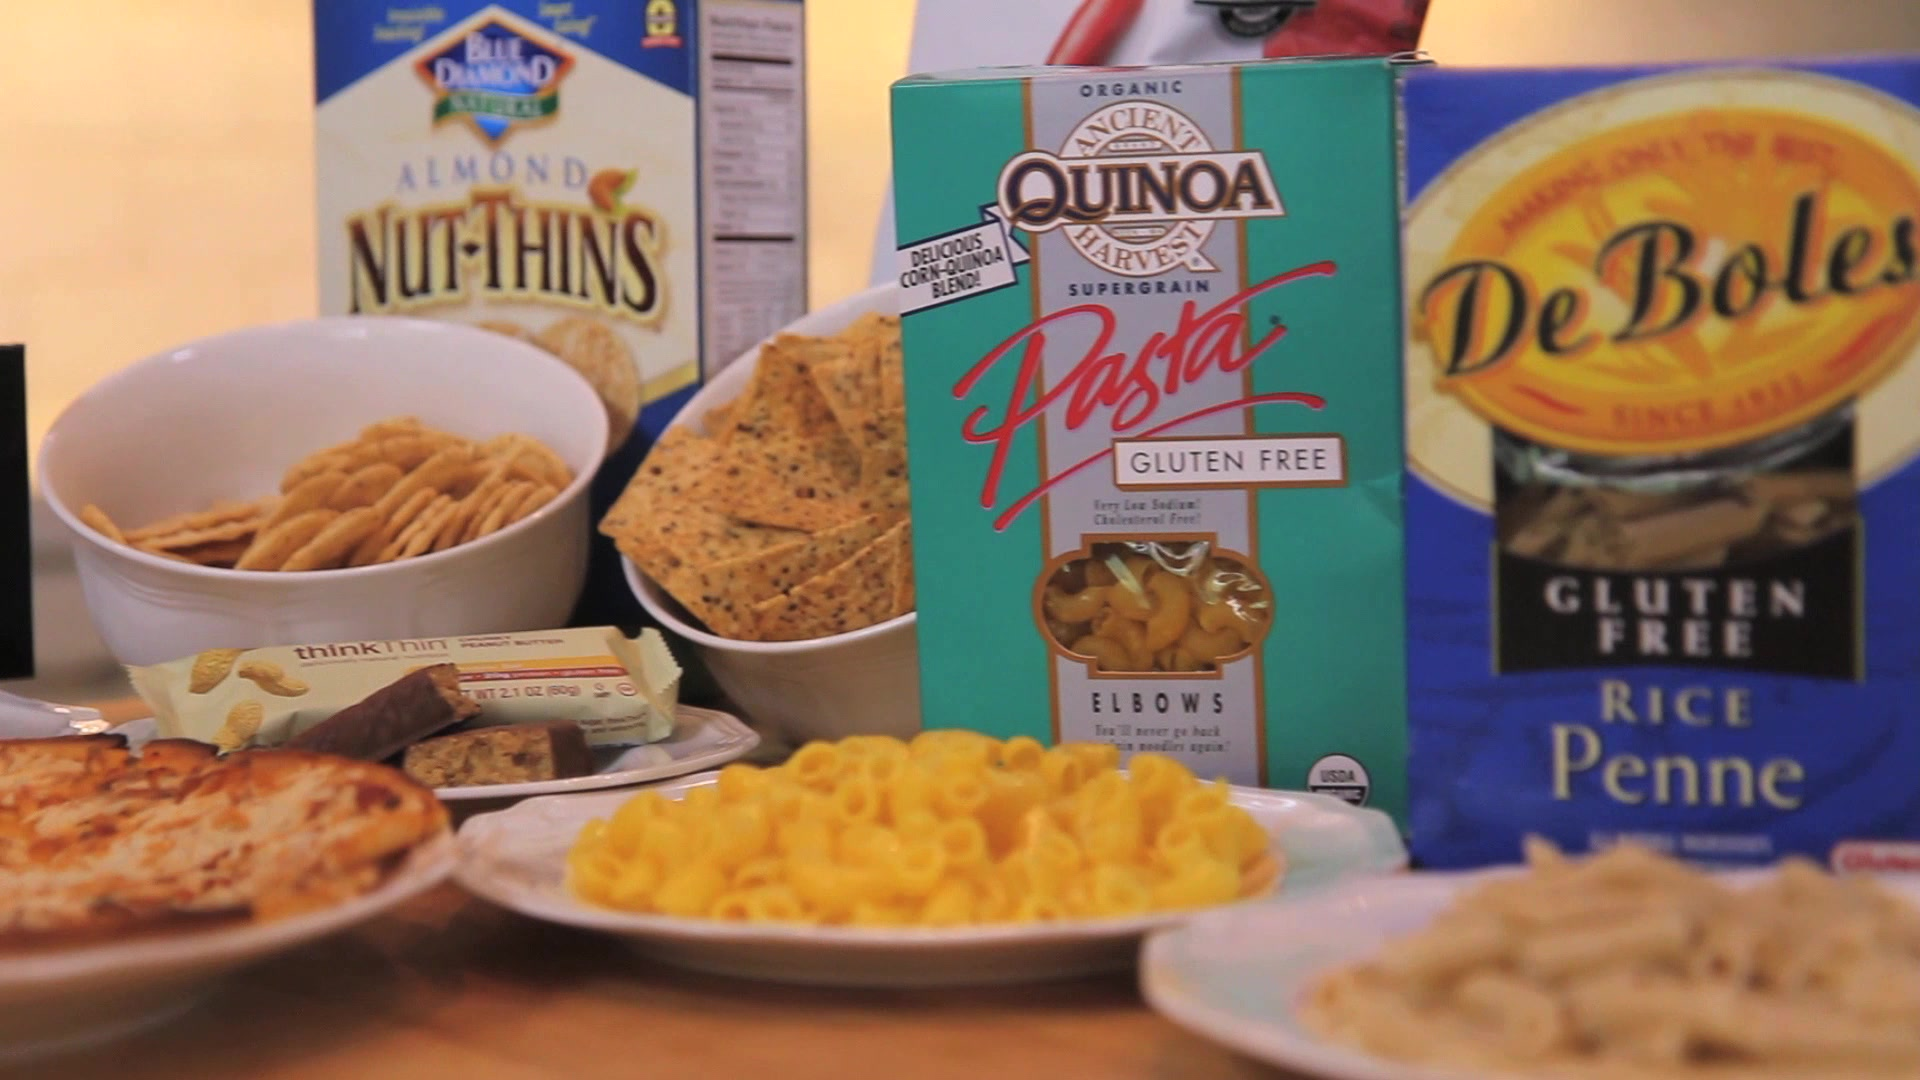 Putting Gluten-Free Foods to the Test